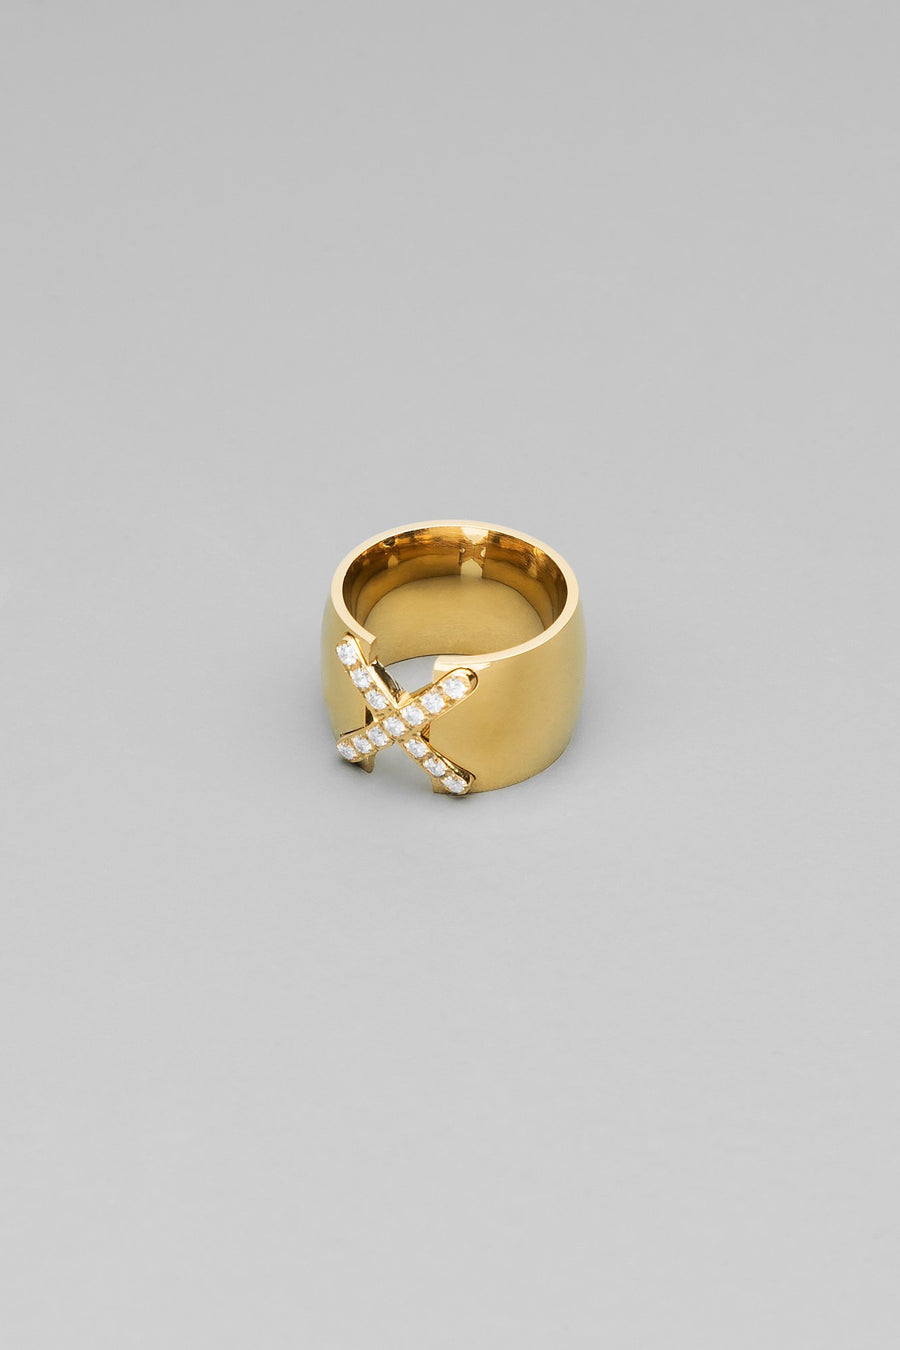 X Marks The Spot CZ Gold Ring - Kosmios